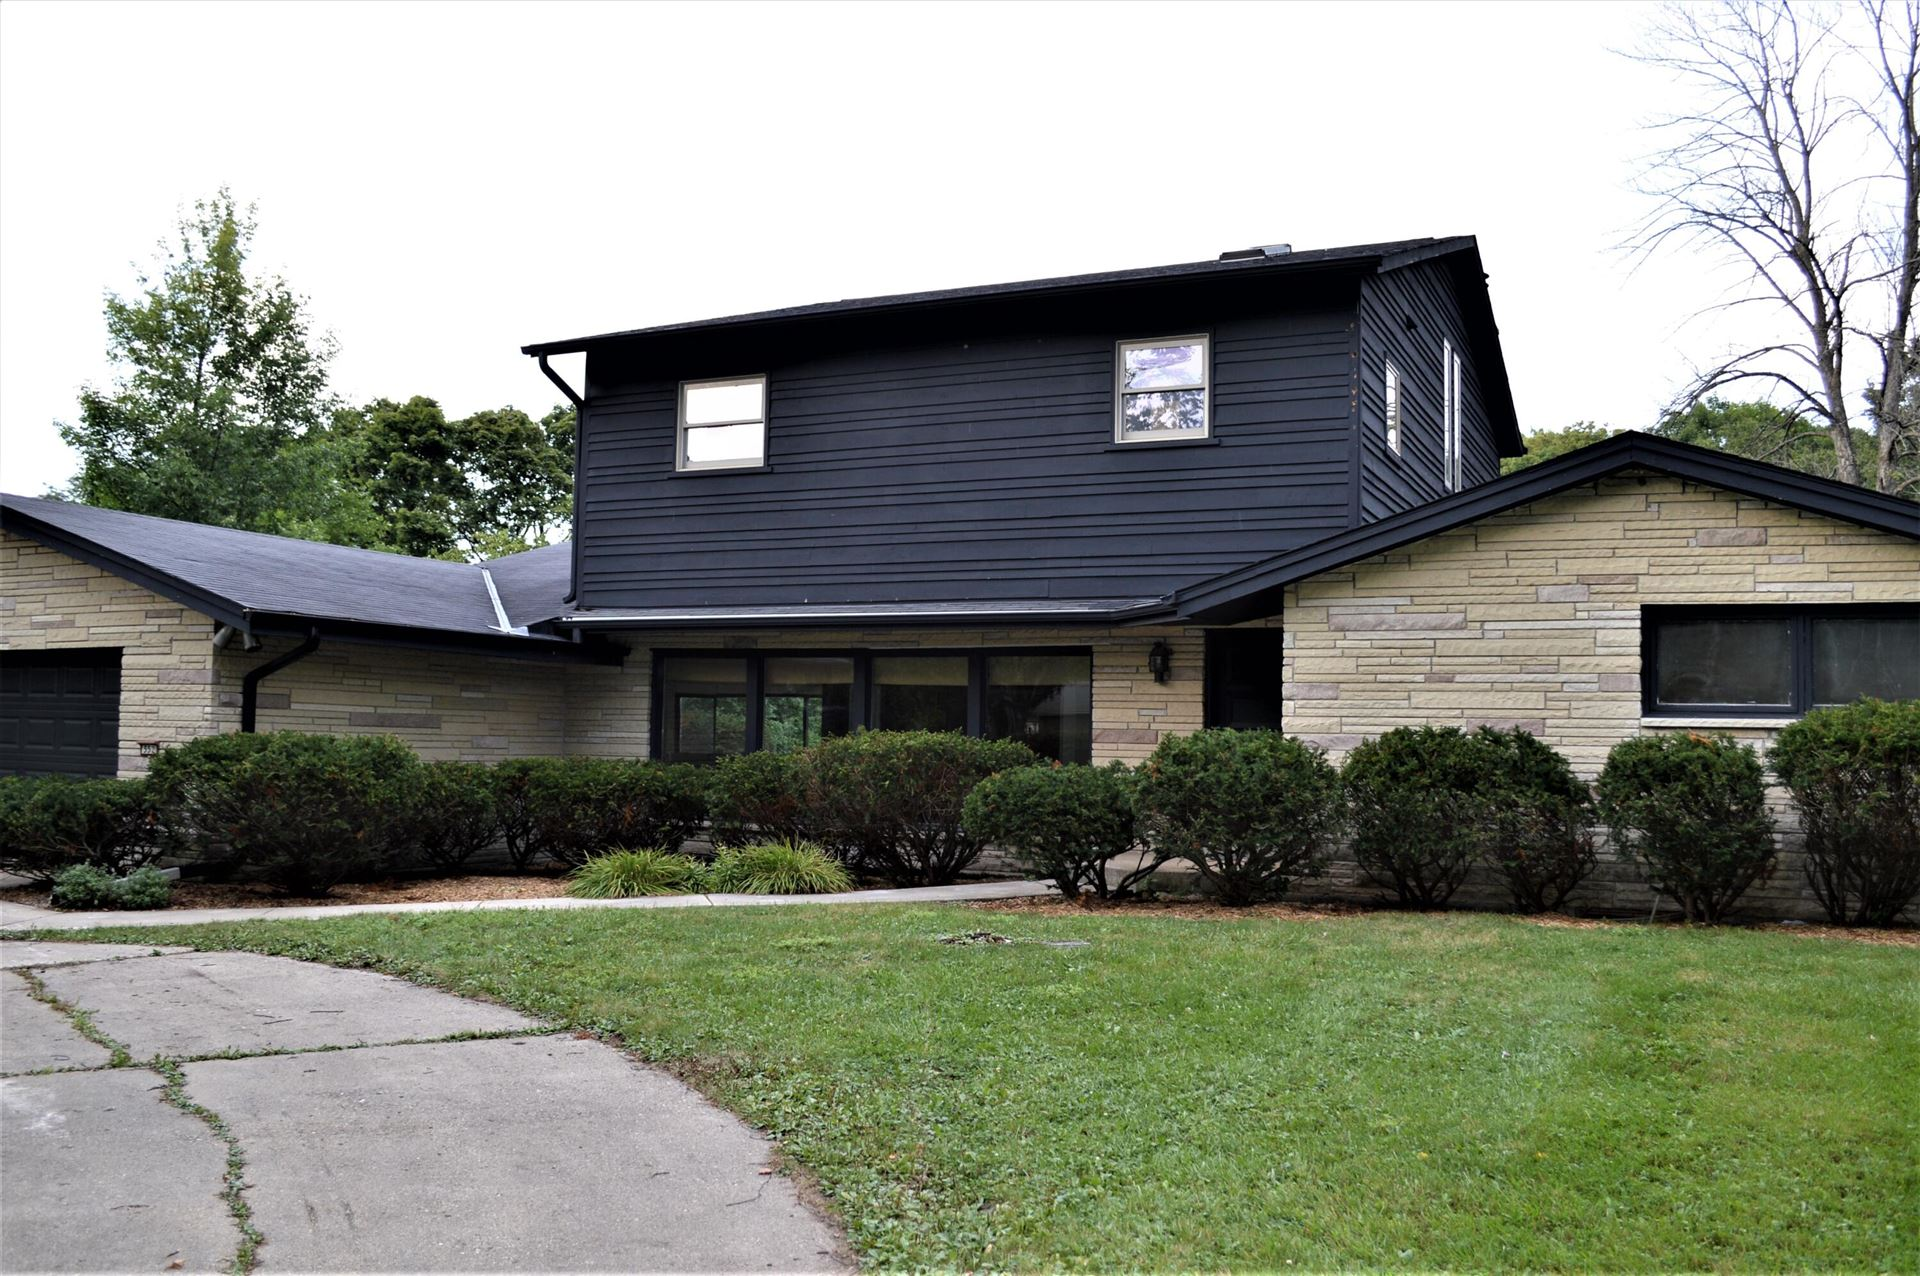 552 E Bay Point Rd, Bayside, WI 53217 - #: 1758762